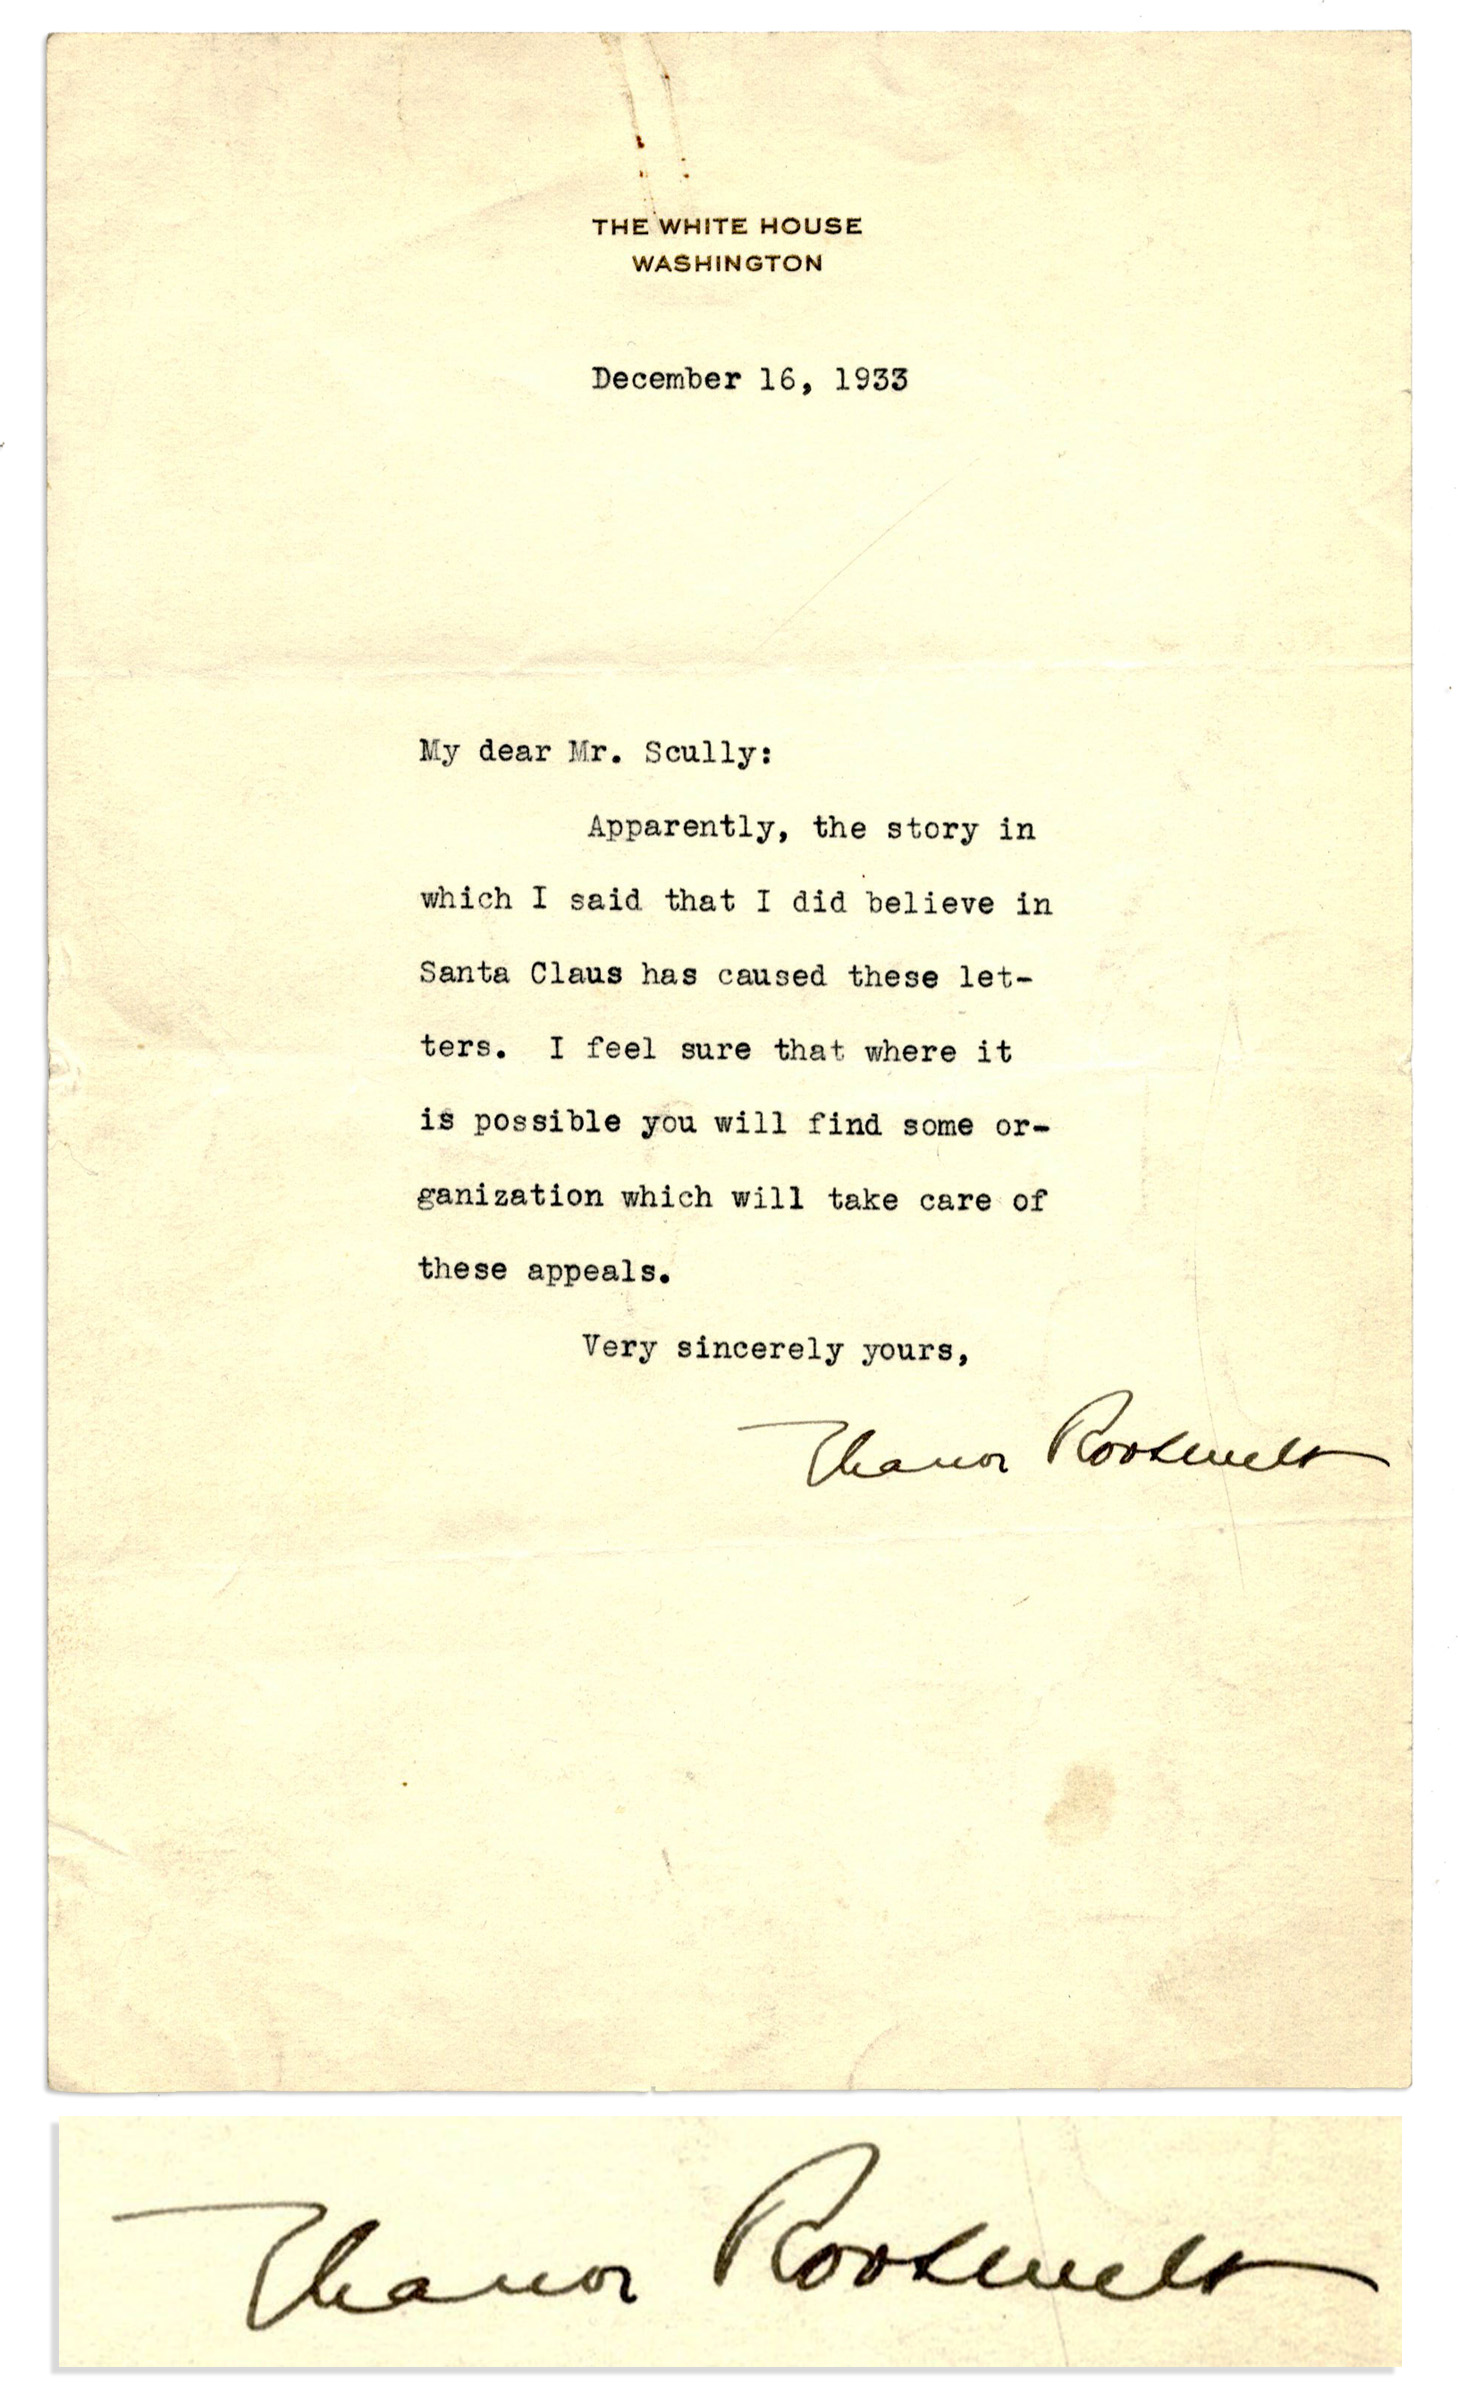 eleanor roosevelt typed letter signed on white house stationery